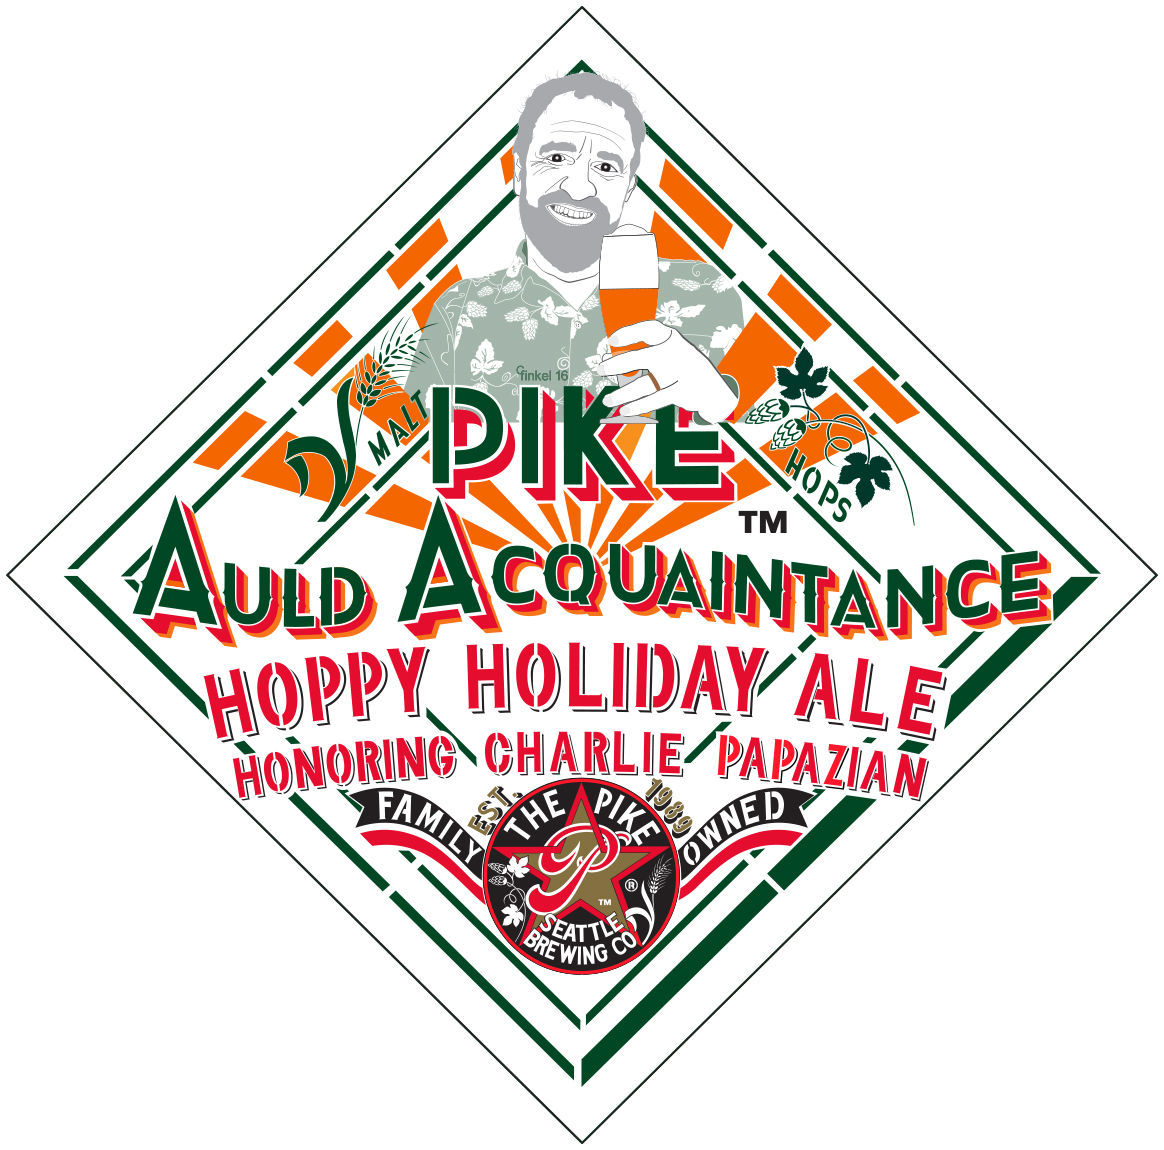 pike-brewing-auld-acquaintance-2016-papazian